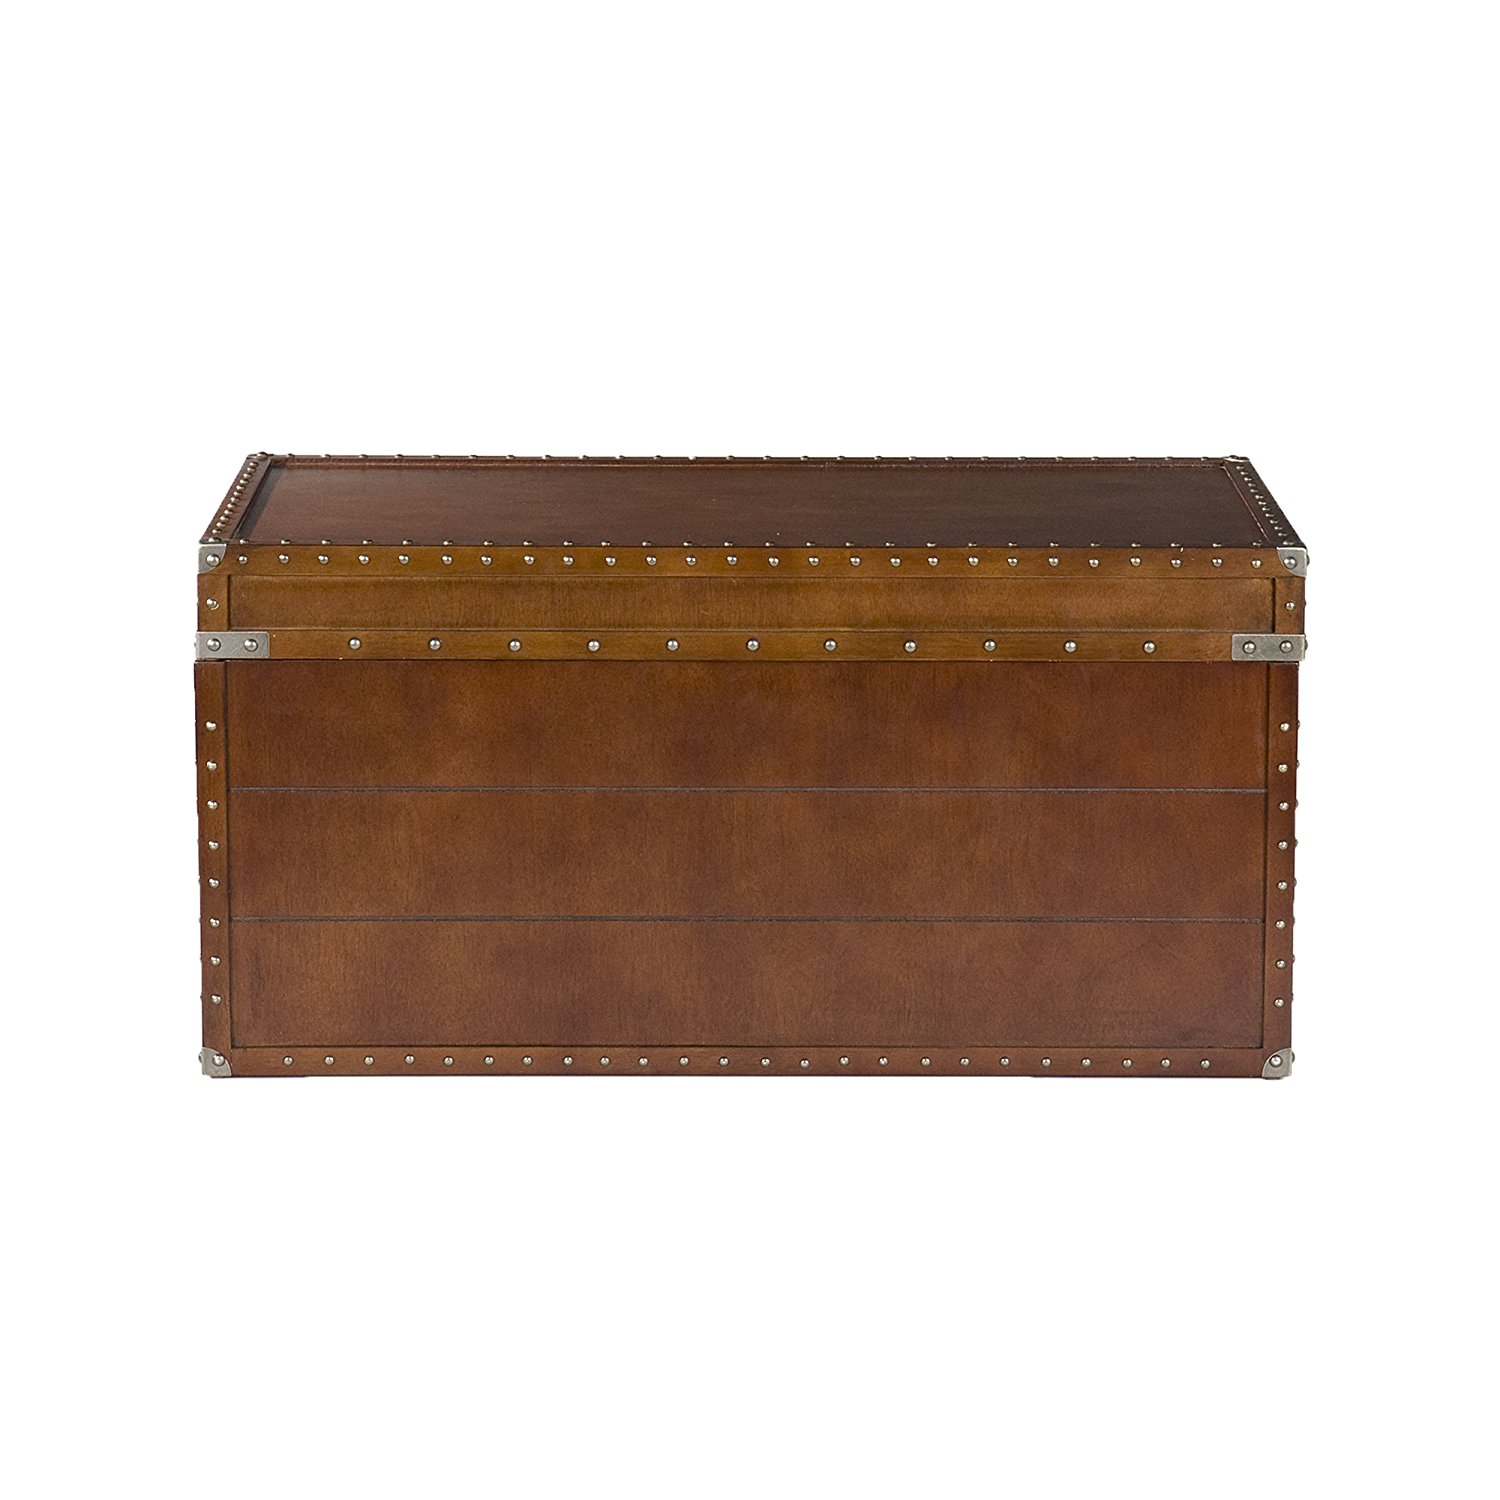 Southern Enterprises Steamer Storage Trunk Cocktail Table, Walnut Finish